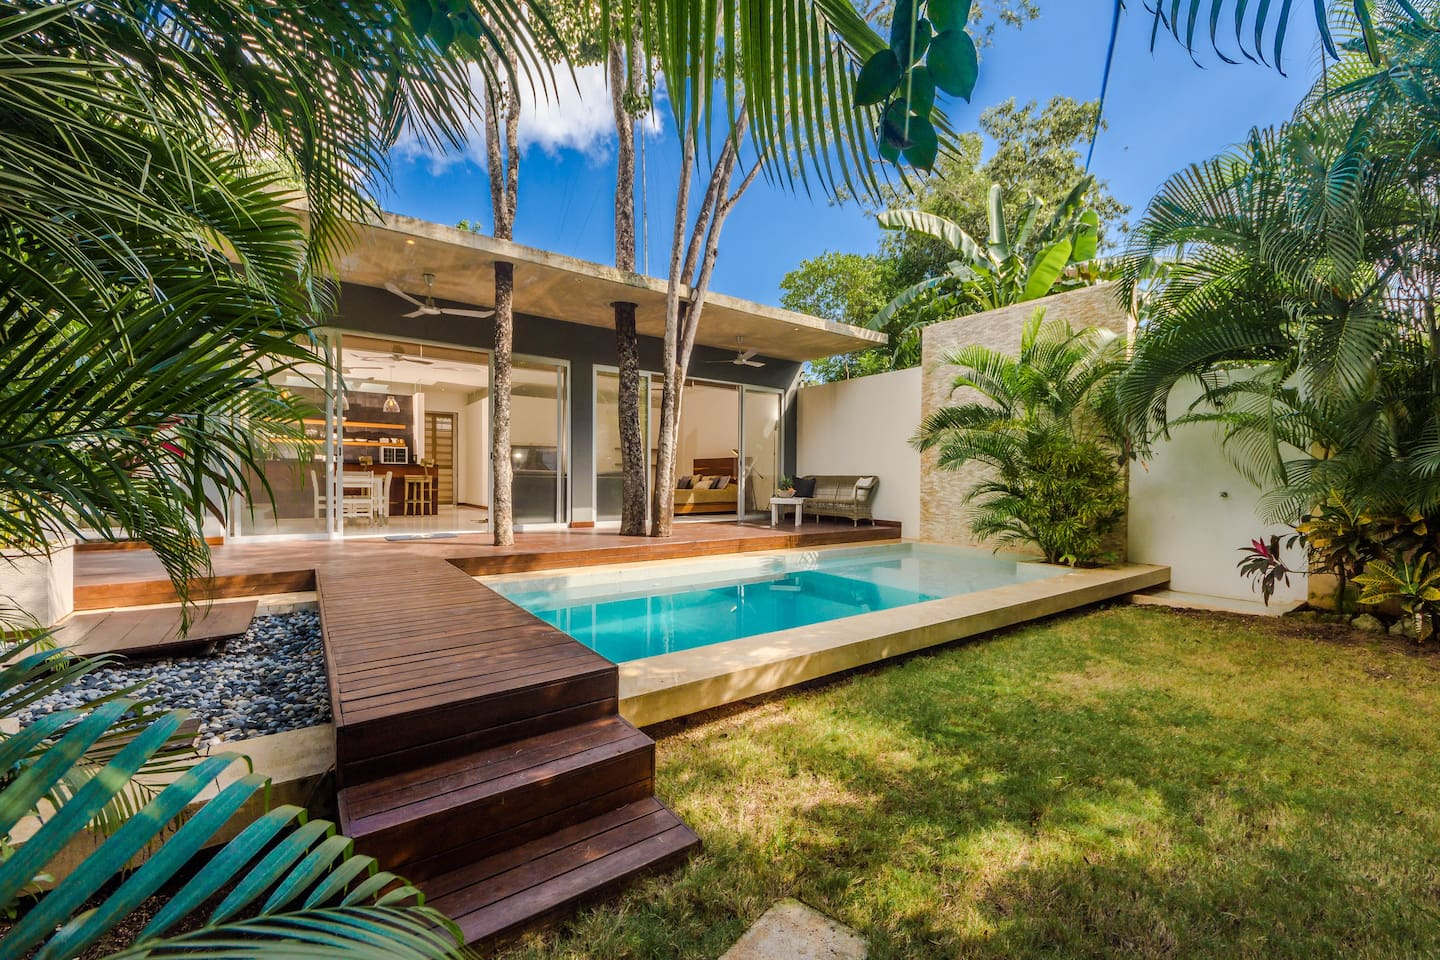 Your favorite home in Tulum